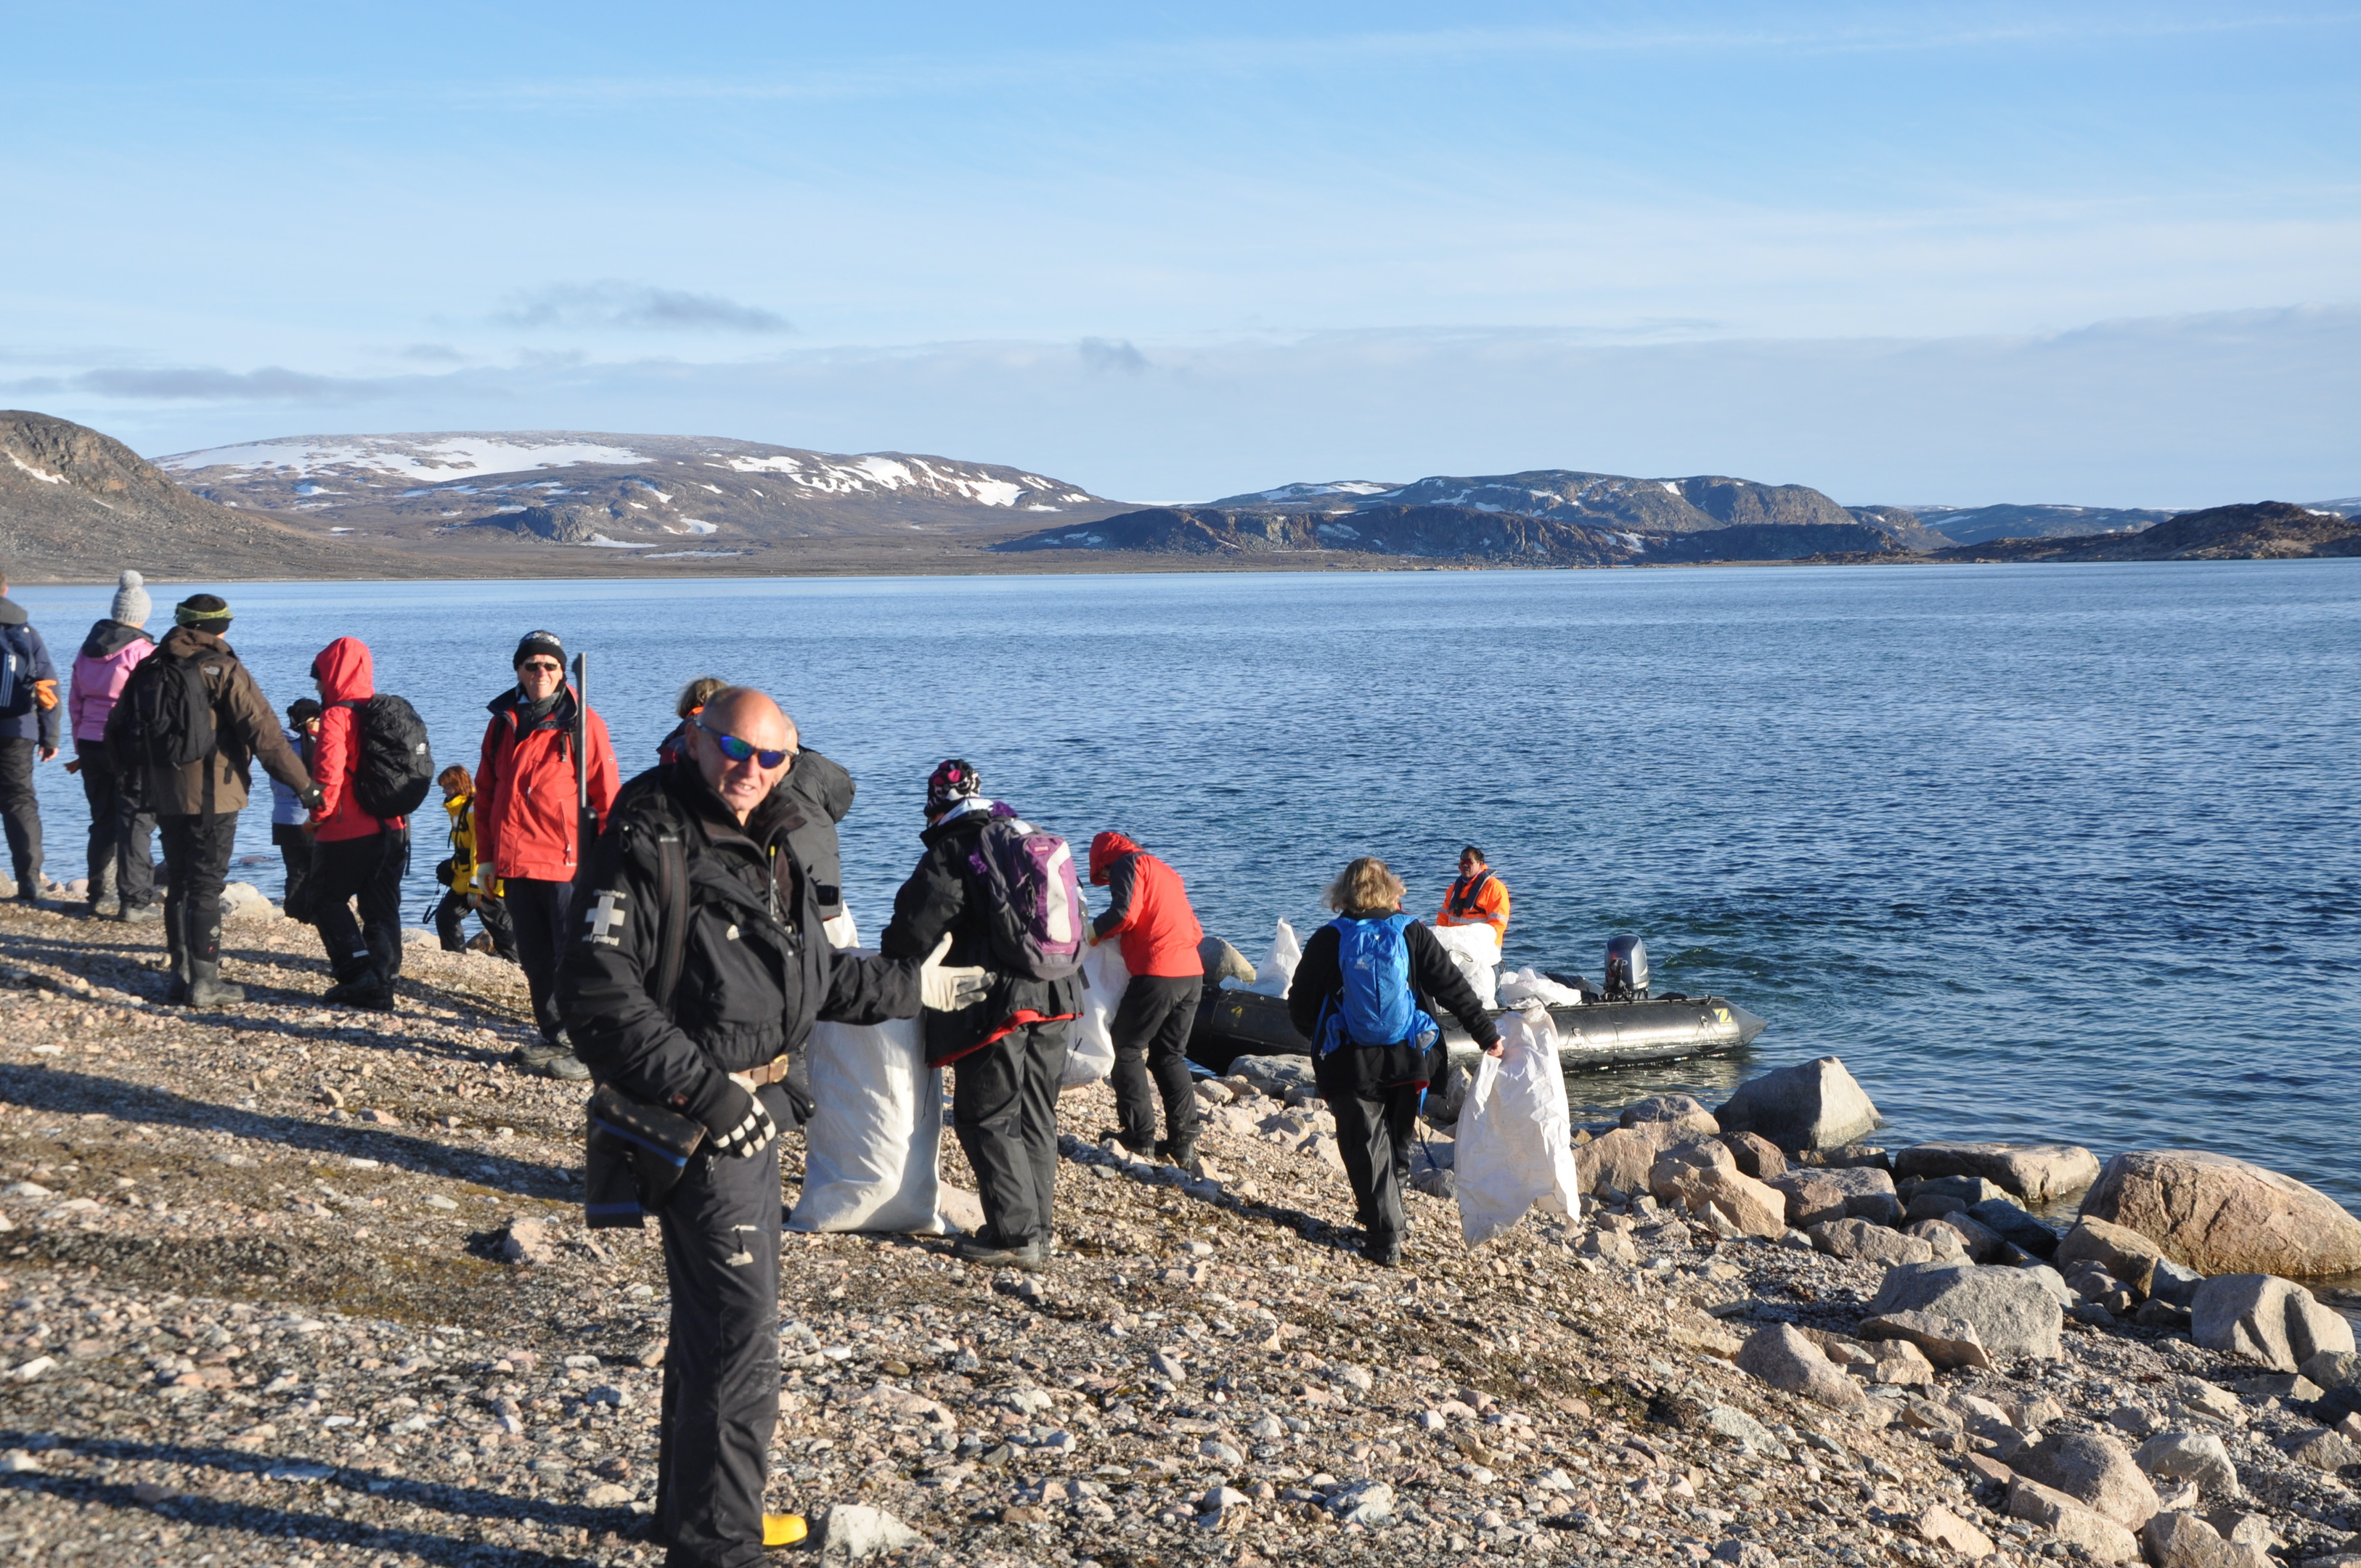 Bill Smith, of Ellon, was part of an Arctic expedition to clear up the coastlines of Svalbard when he came across waste from fishing vessels at Phippsoya - one of the most northerly islands in the world.